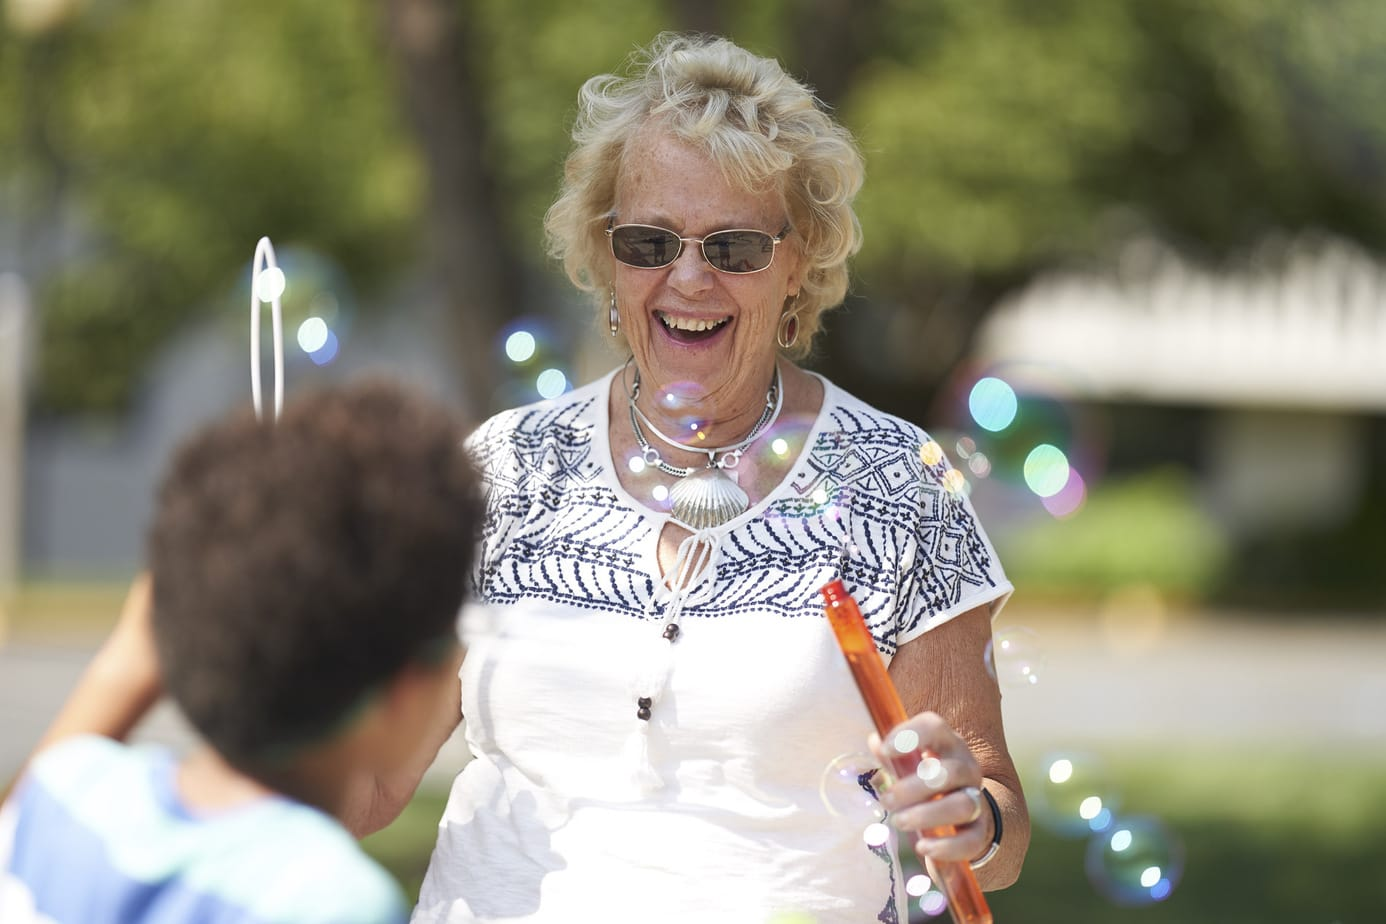 Retirement community photography. Smiling resident playing with grandkids